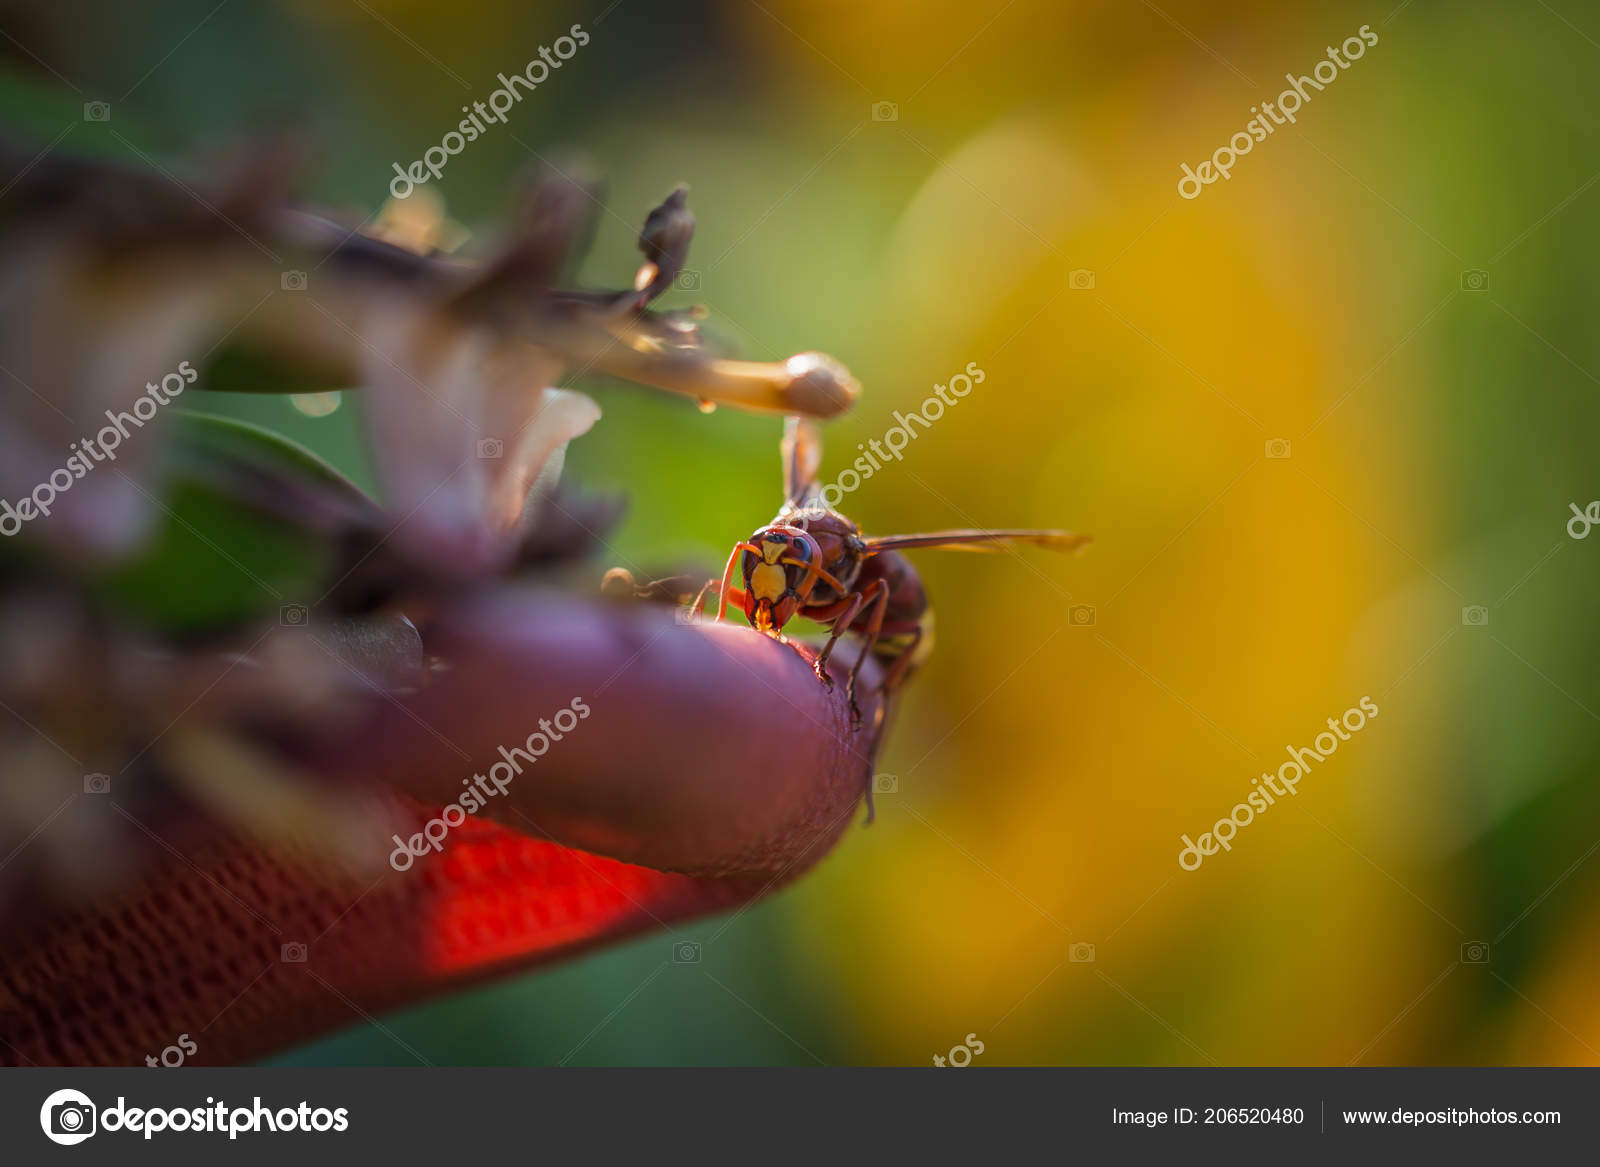 Dangerous Hornet Climbs Banana Tree Greece Dangerous Hornet